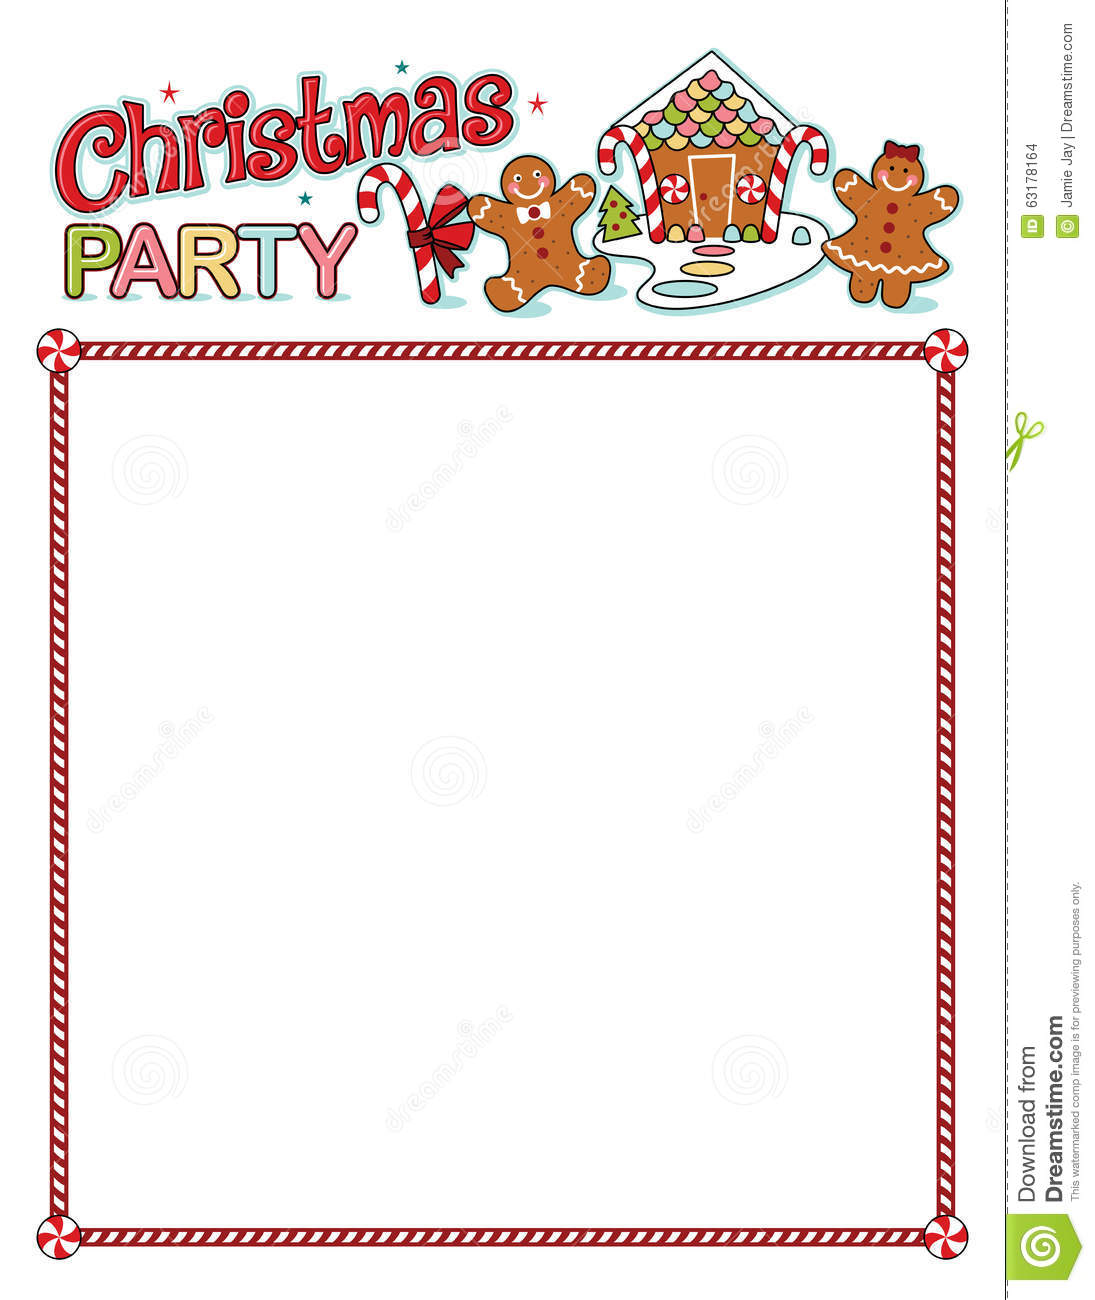 Christmas Party Printout With Border Stock Vector - Illustration of ...